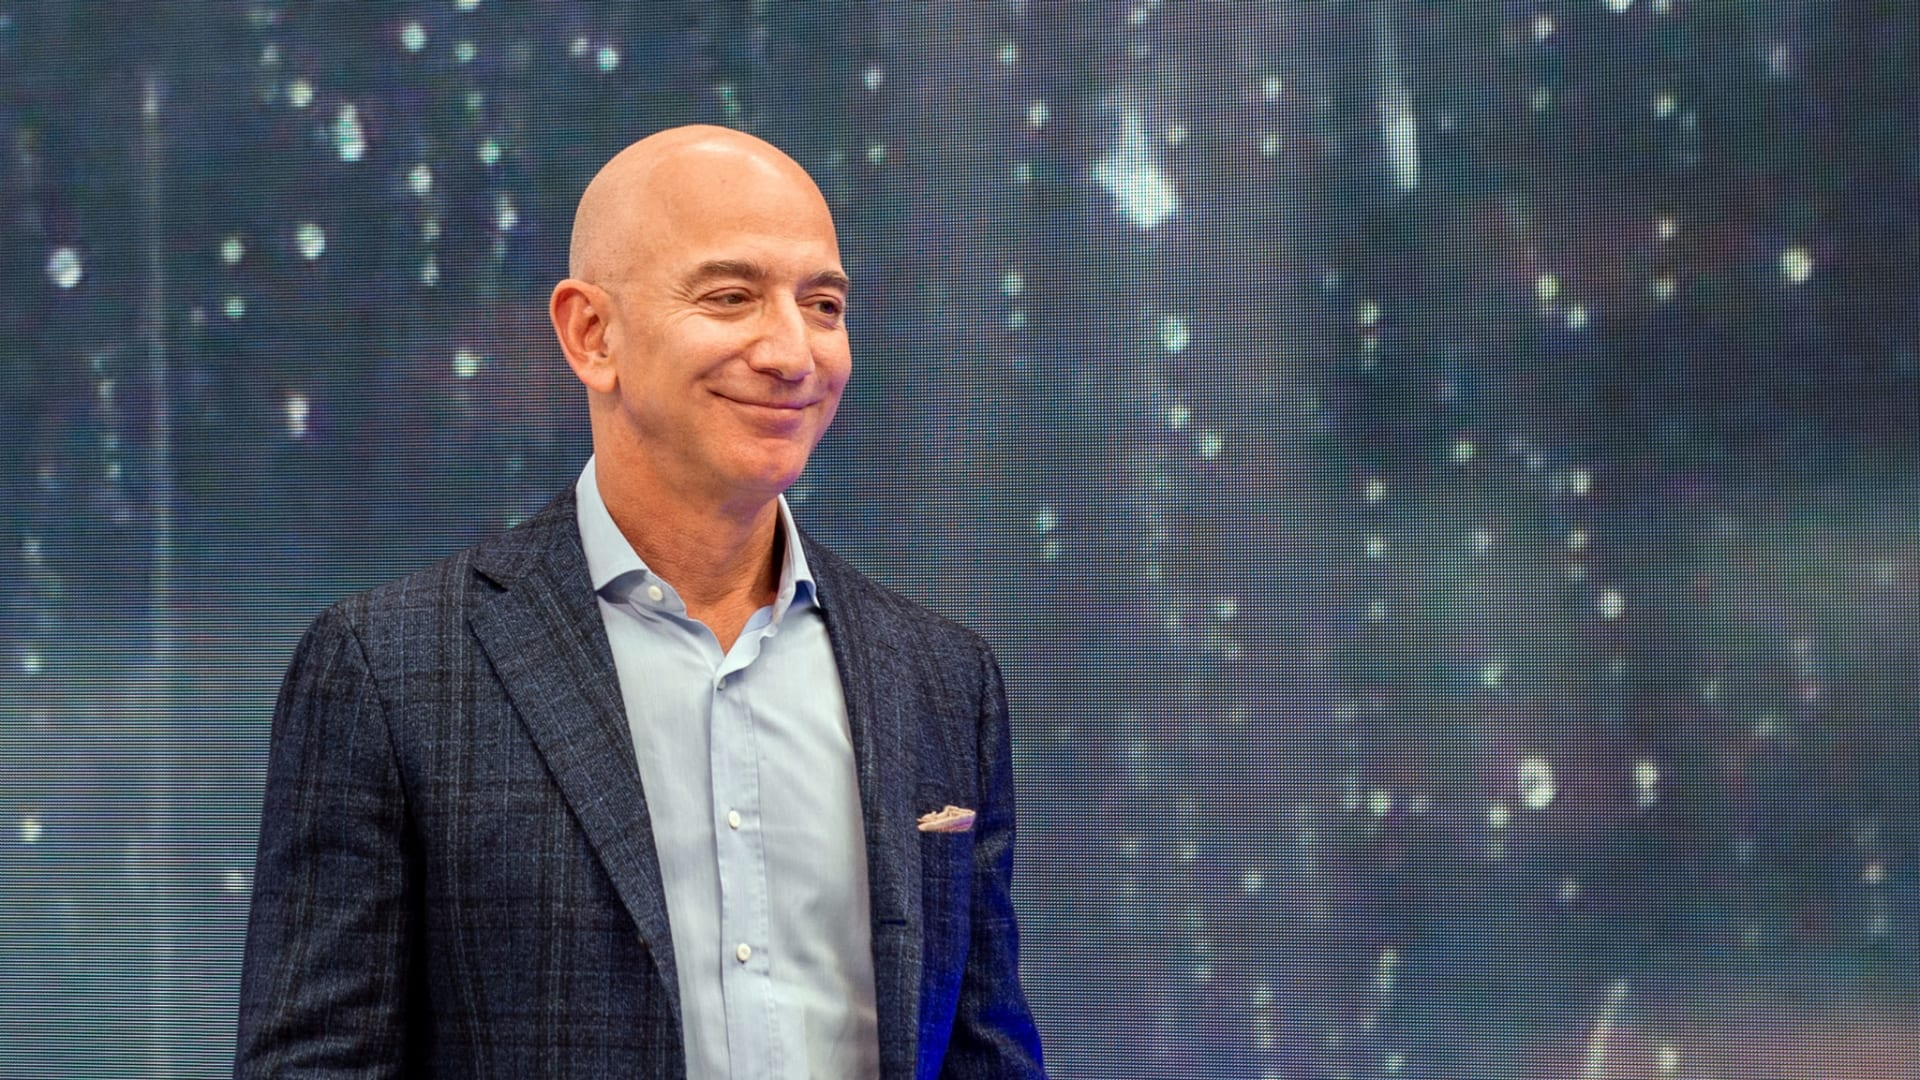 Why Strategic Thinkers Like Jeff Bezos Embrace the Rule of Things That Will Never Change